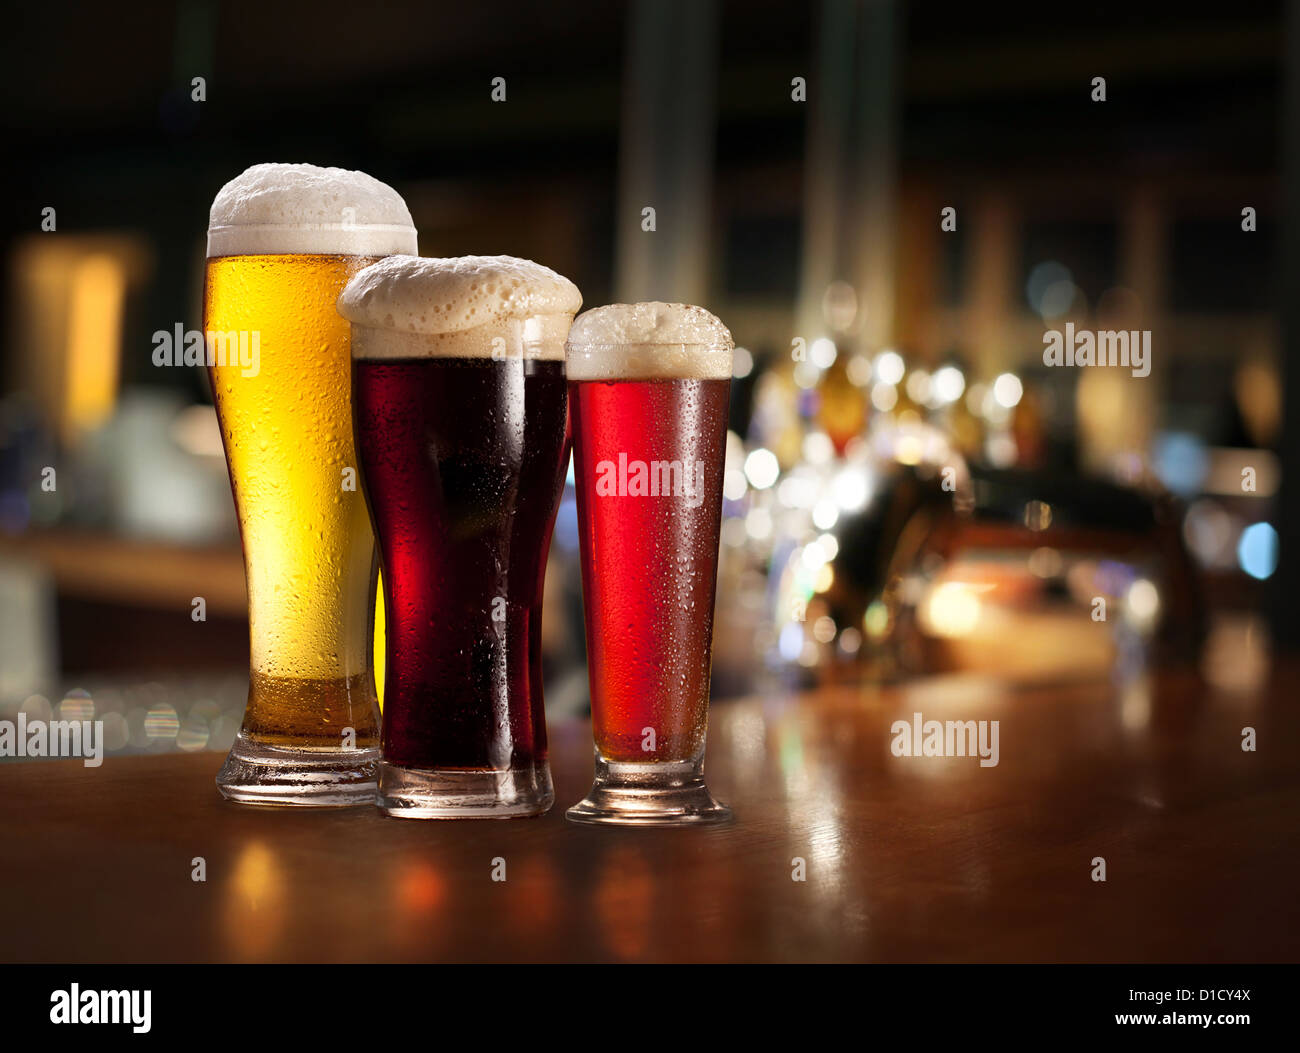 Glasses of light and dark beer on a pub background. - Stock Image